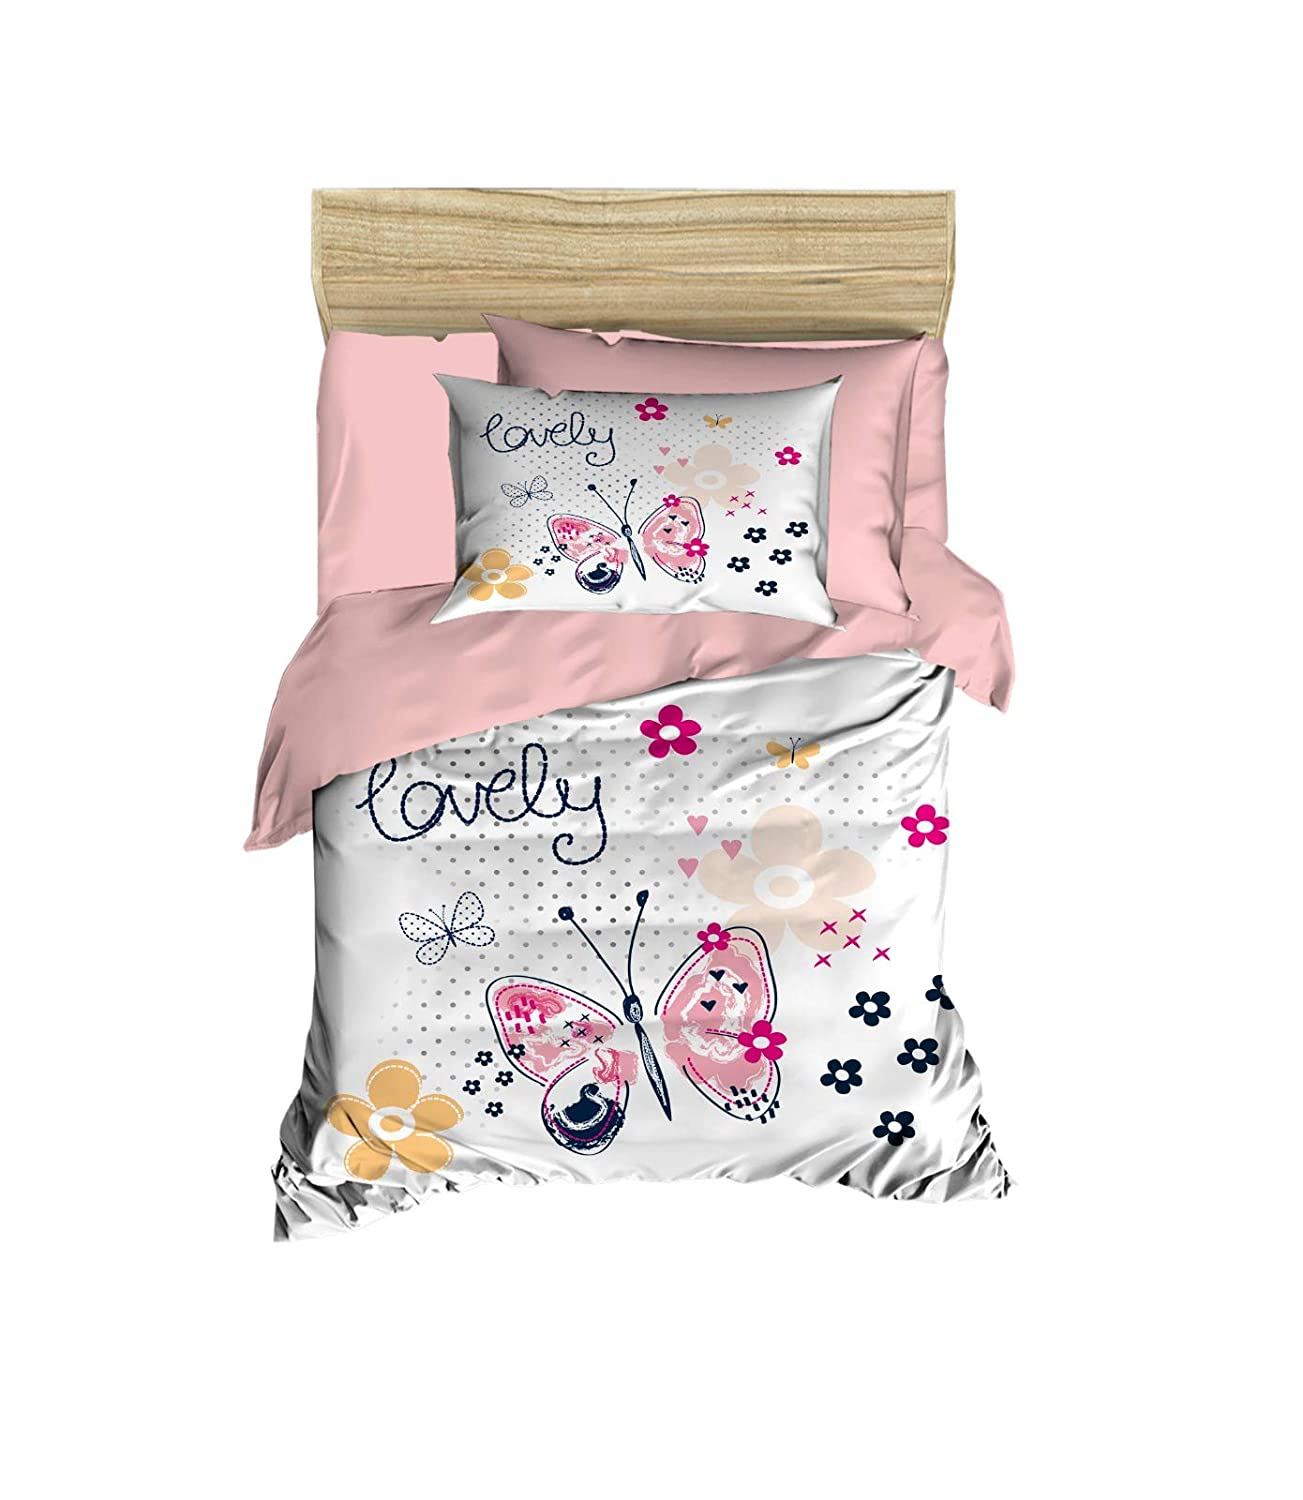 100% Cotton Baby Bedding Flower and Butterfly Themed Nursery Baby Bed Set, Toddlers Crib Bedding for Baby Girls, Duvet Cover Set with Comforter, 5 Pieces 71NiMis2ZEL